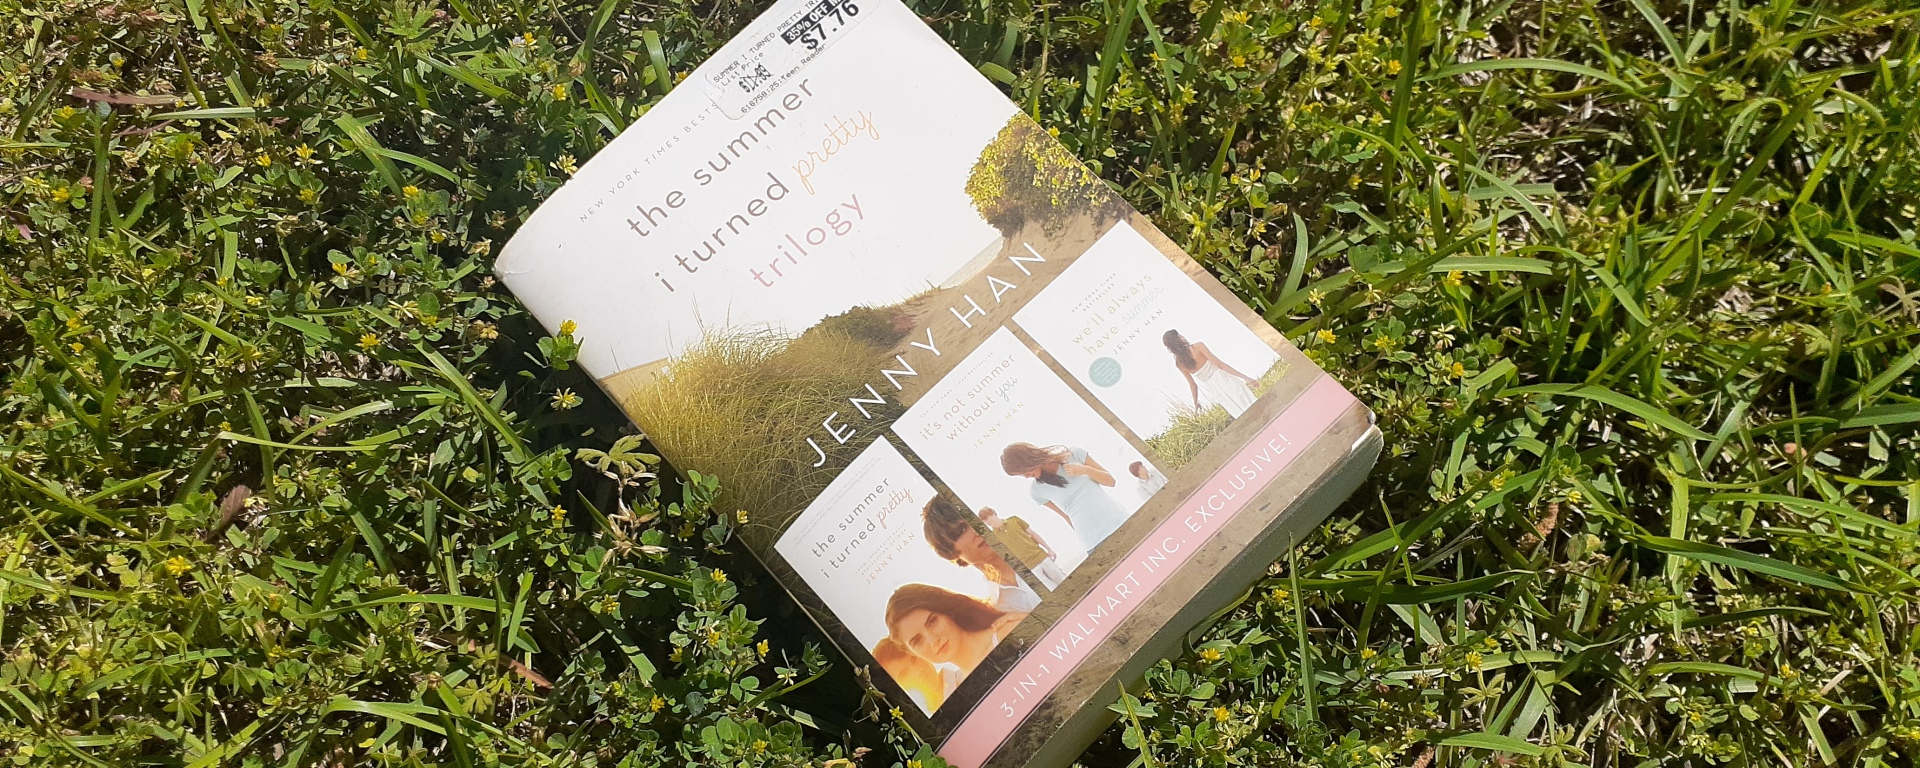 a big white book with a girl and two boys on the cover lies in the grass in the sun